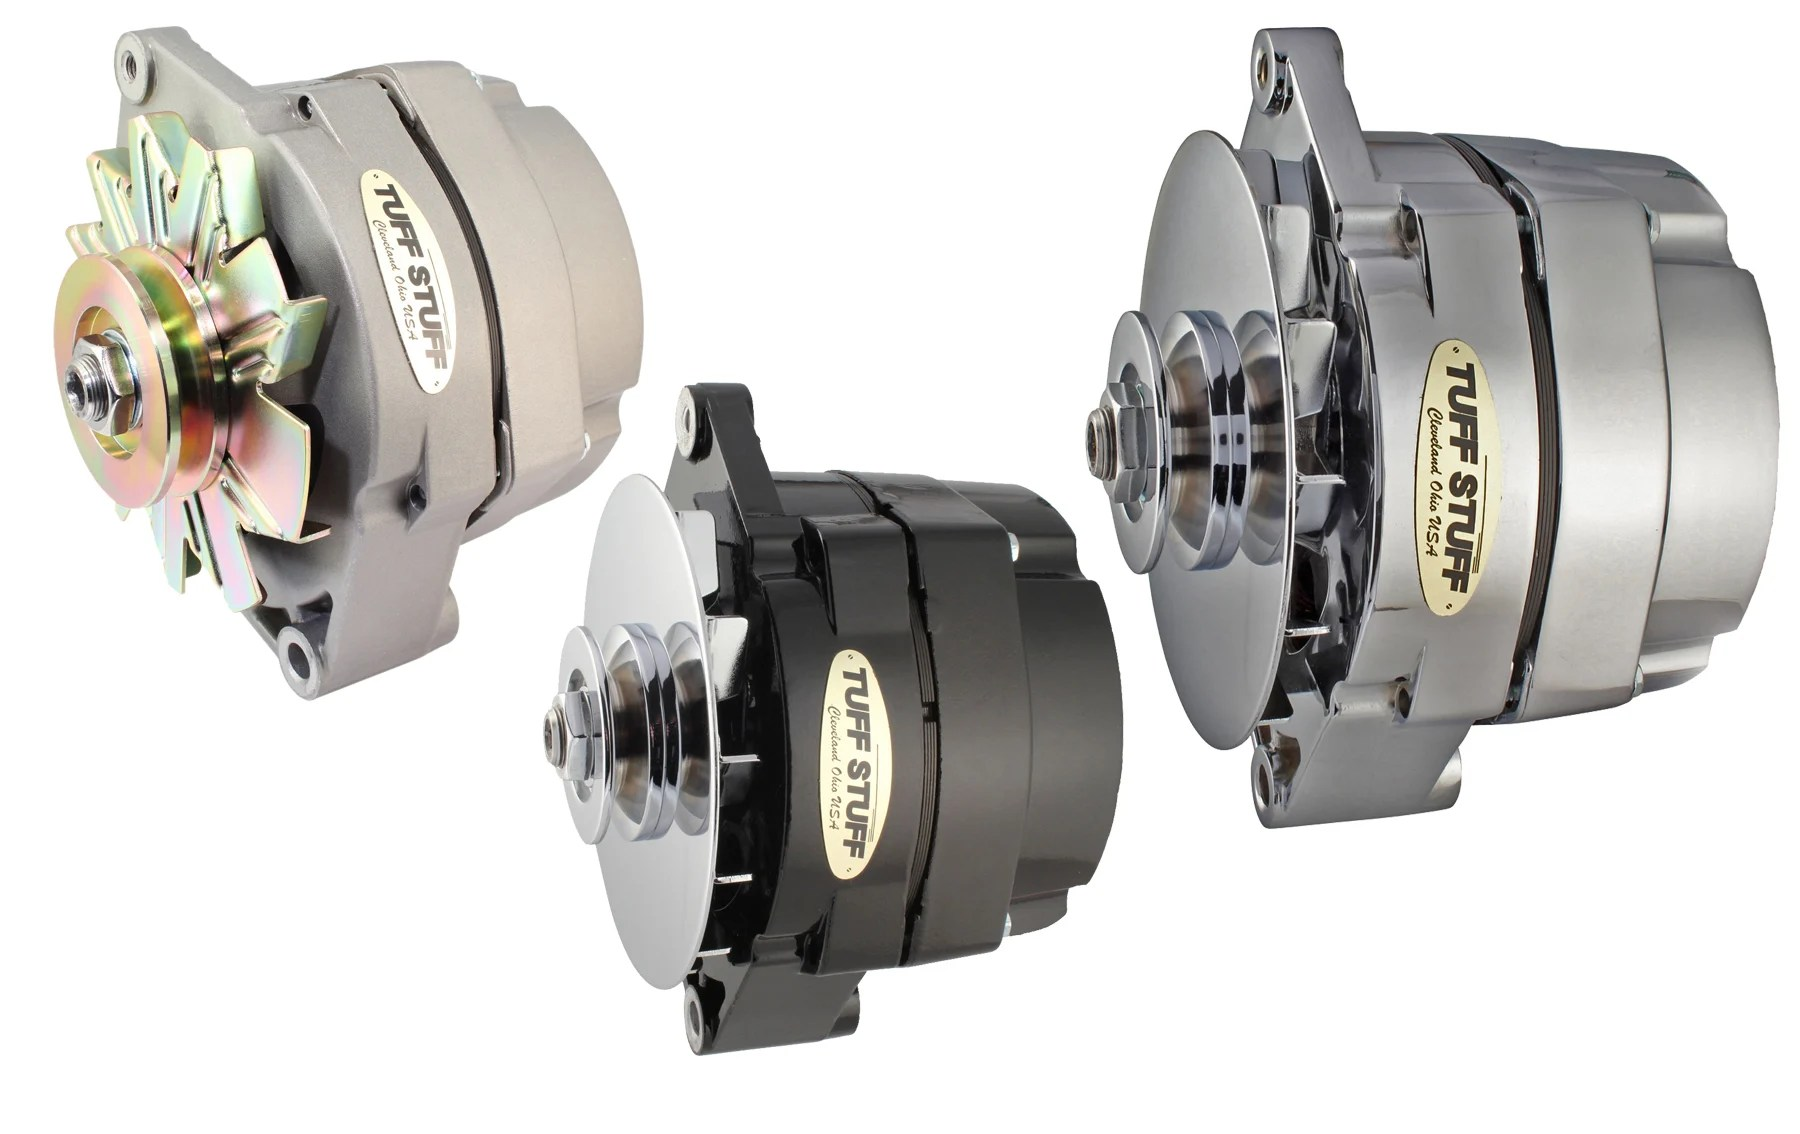 hight resolution of alternator tuff stuff s alternators are available in chrome cast plus polished aluminum and powdercoated amp ratings range from 100 to 160